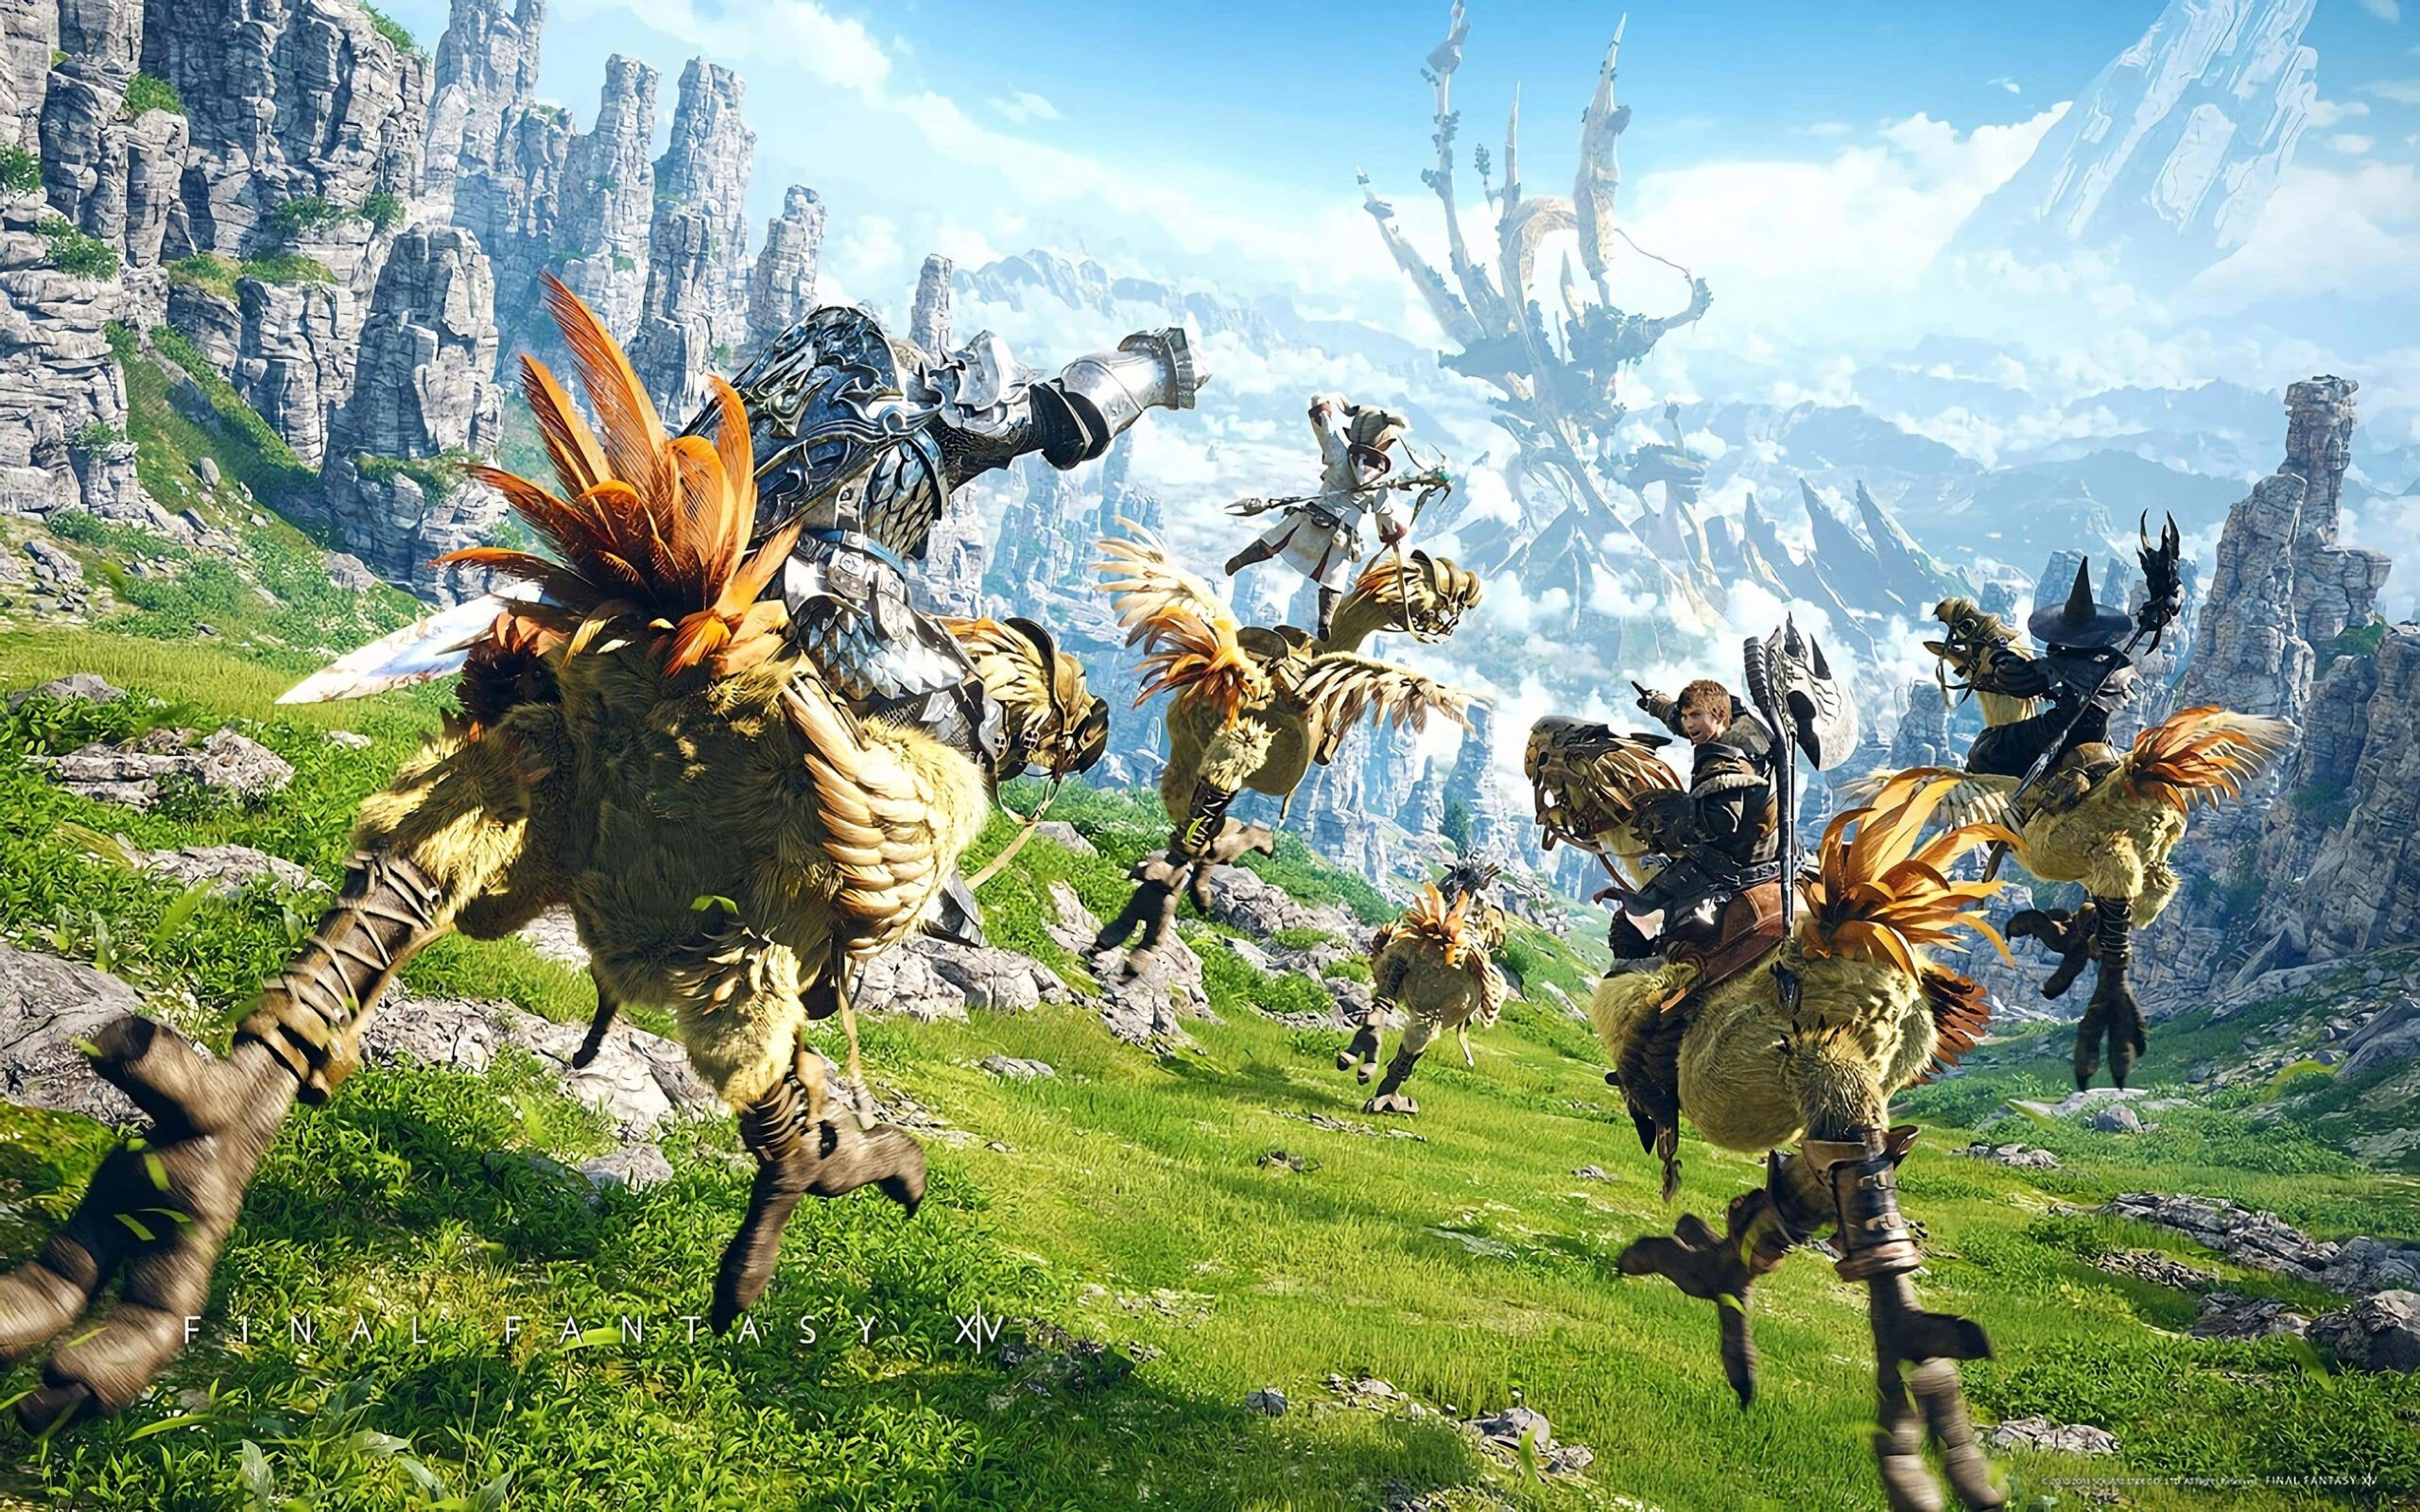 Final Fantasy XIV Runs Out Of Digital Copies Due To Spike In Players